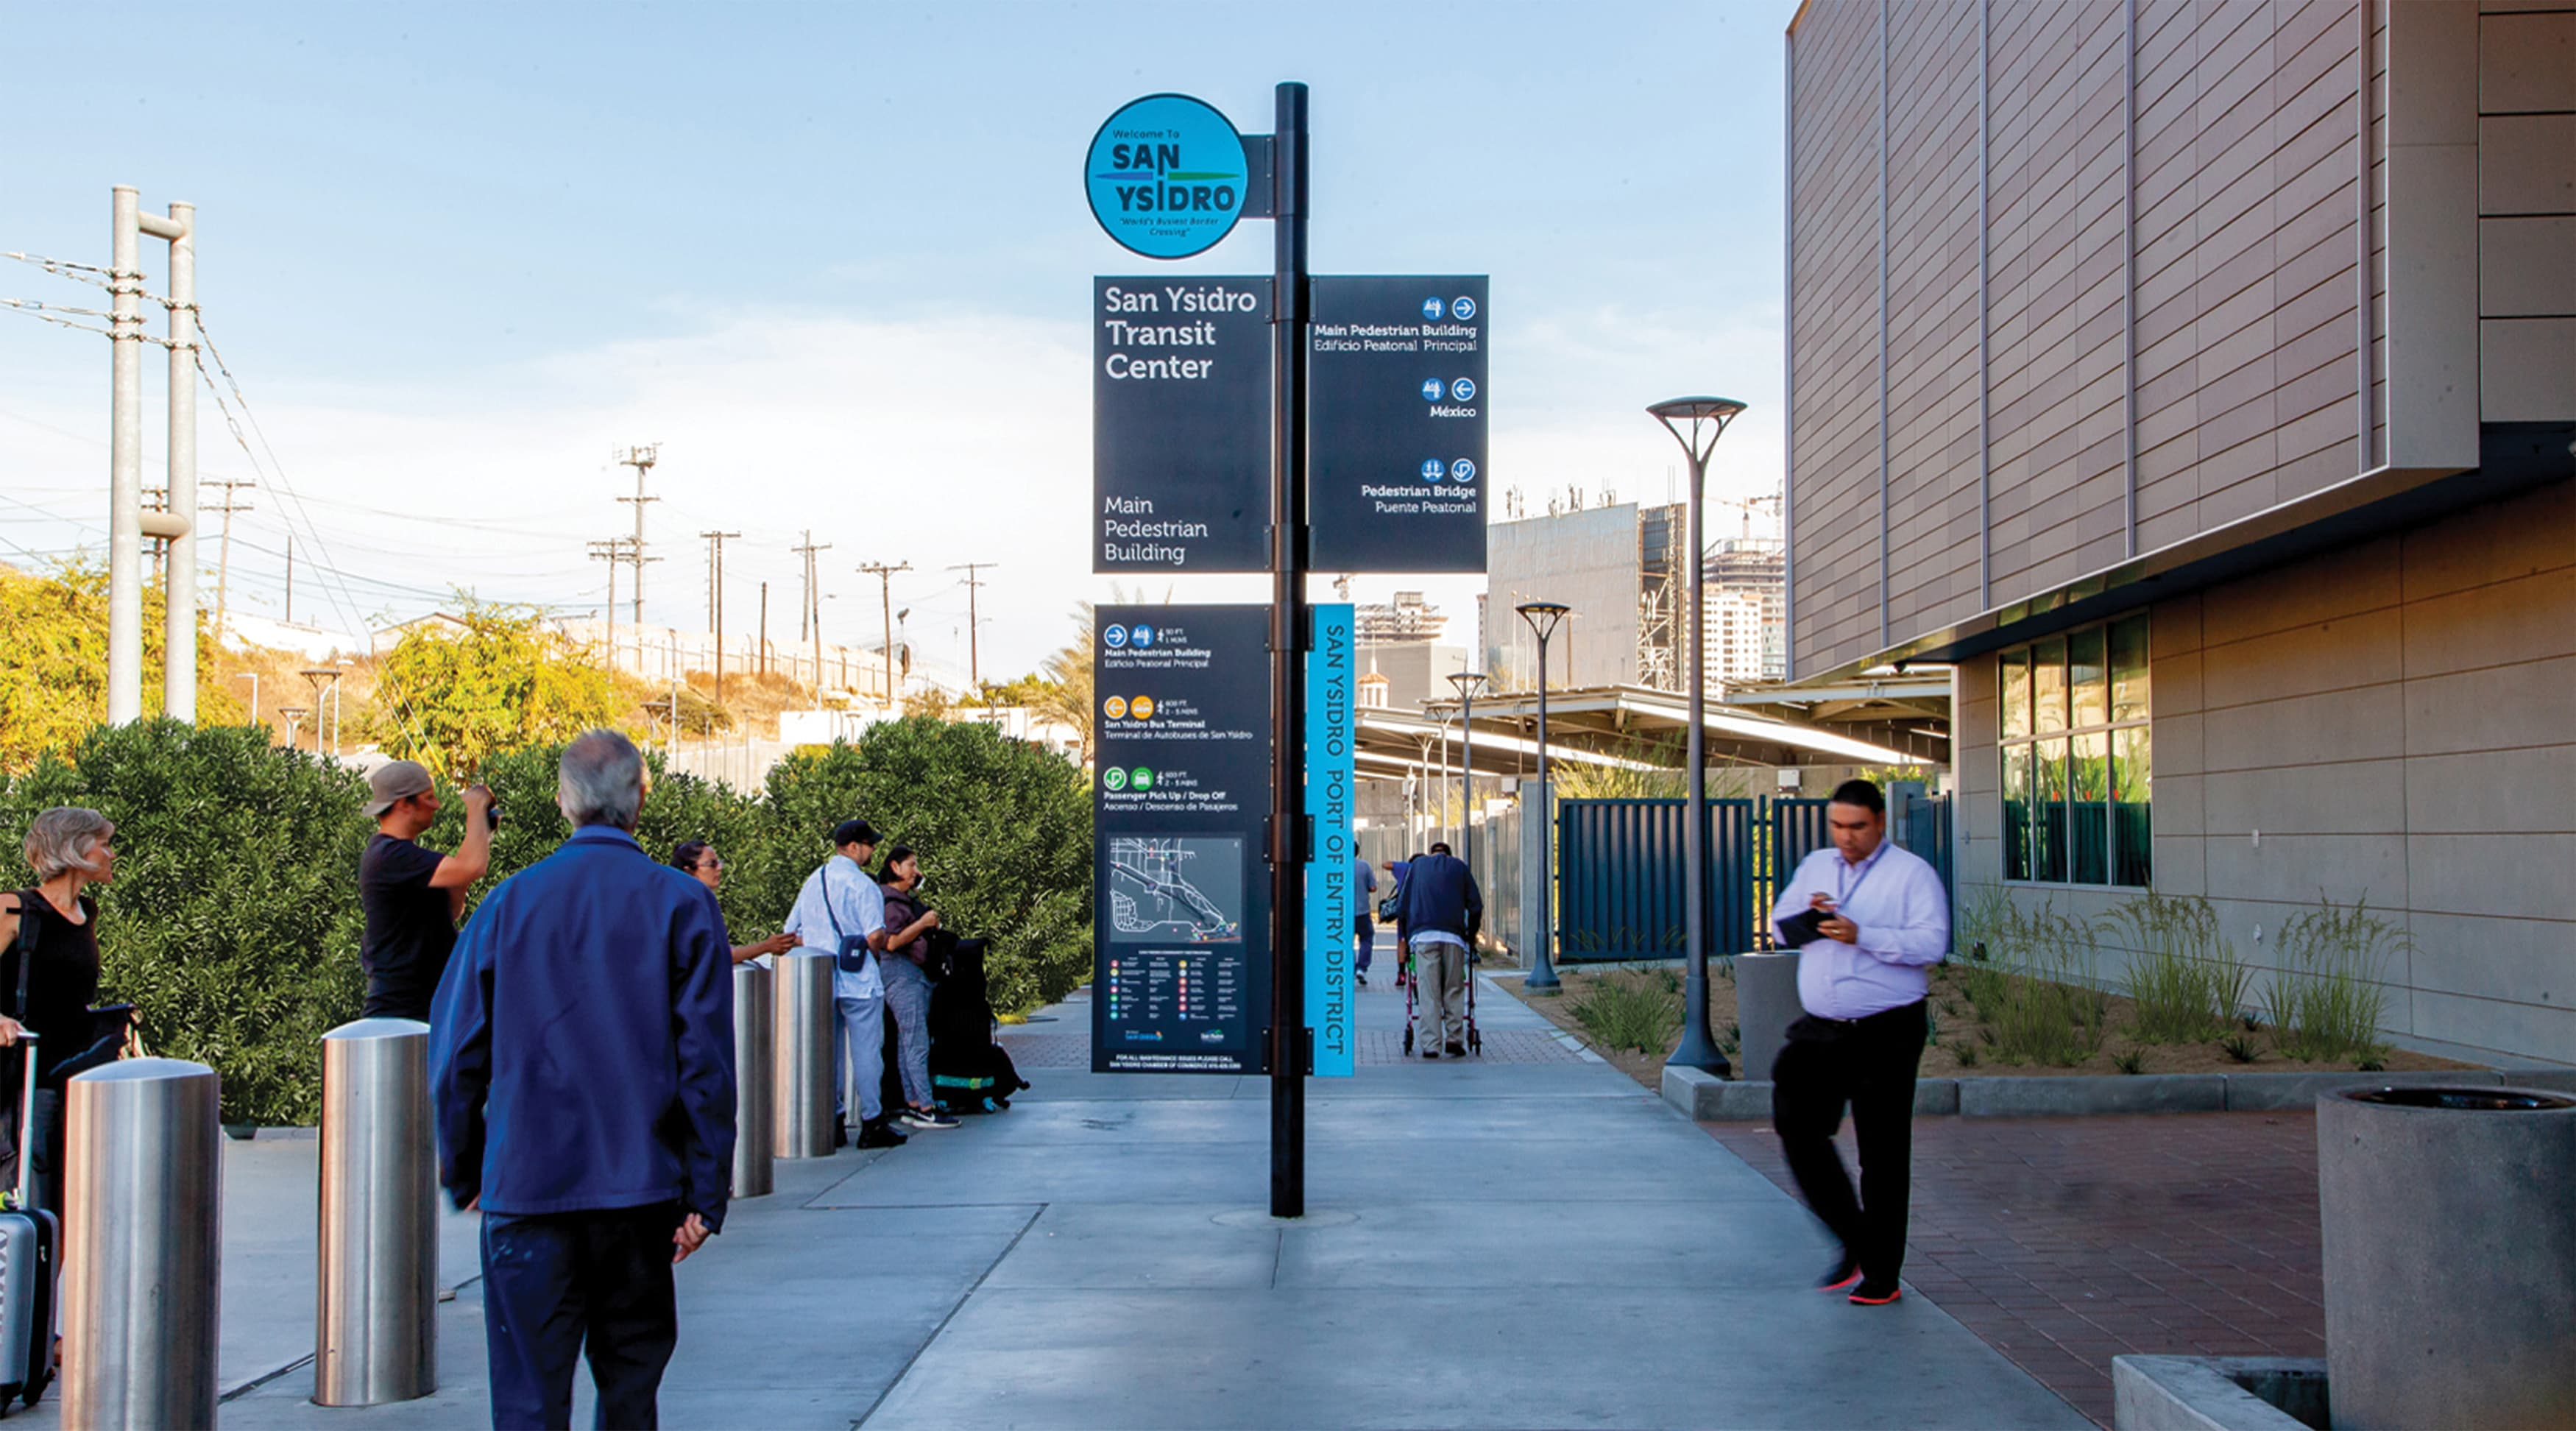 San Ysidro Port of Entry pedestrian wayfinding system and directory map